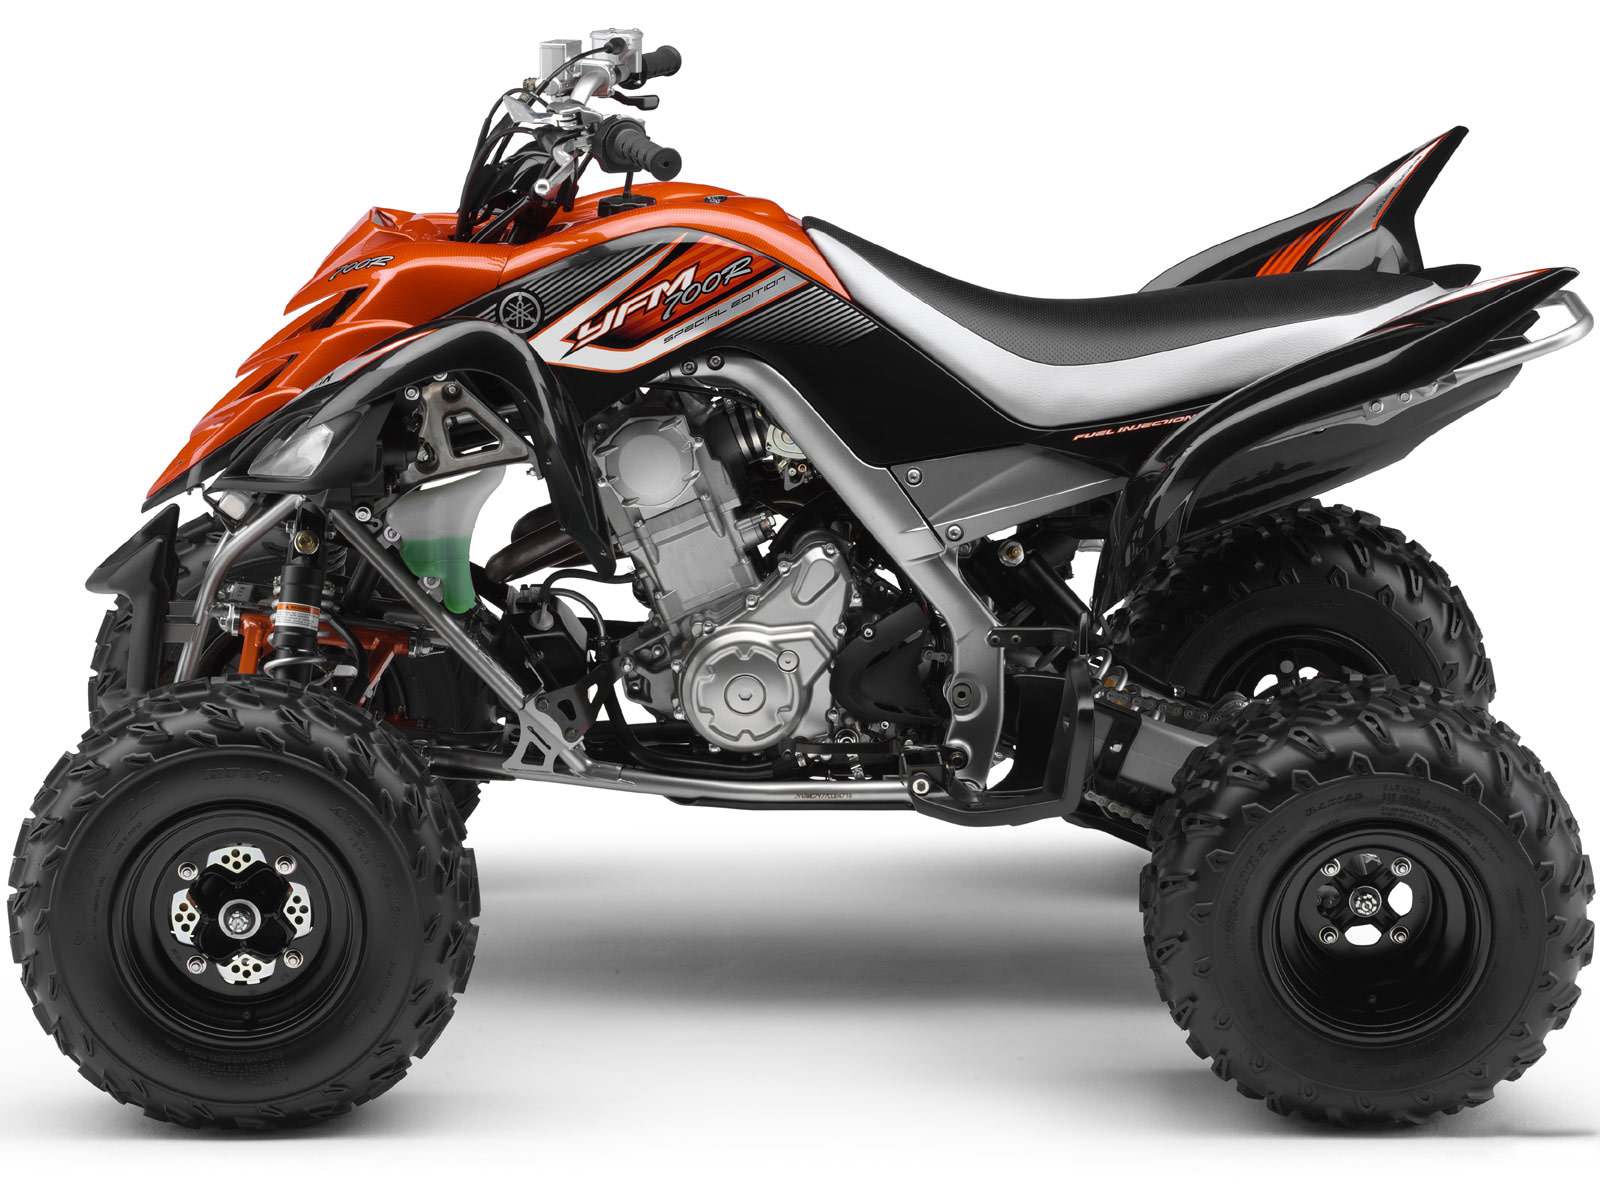 2007 Yamaha Raptor 700r Atv Pictures  Review  Specifications